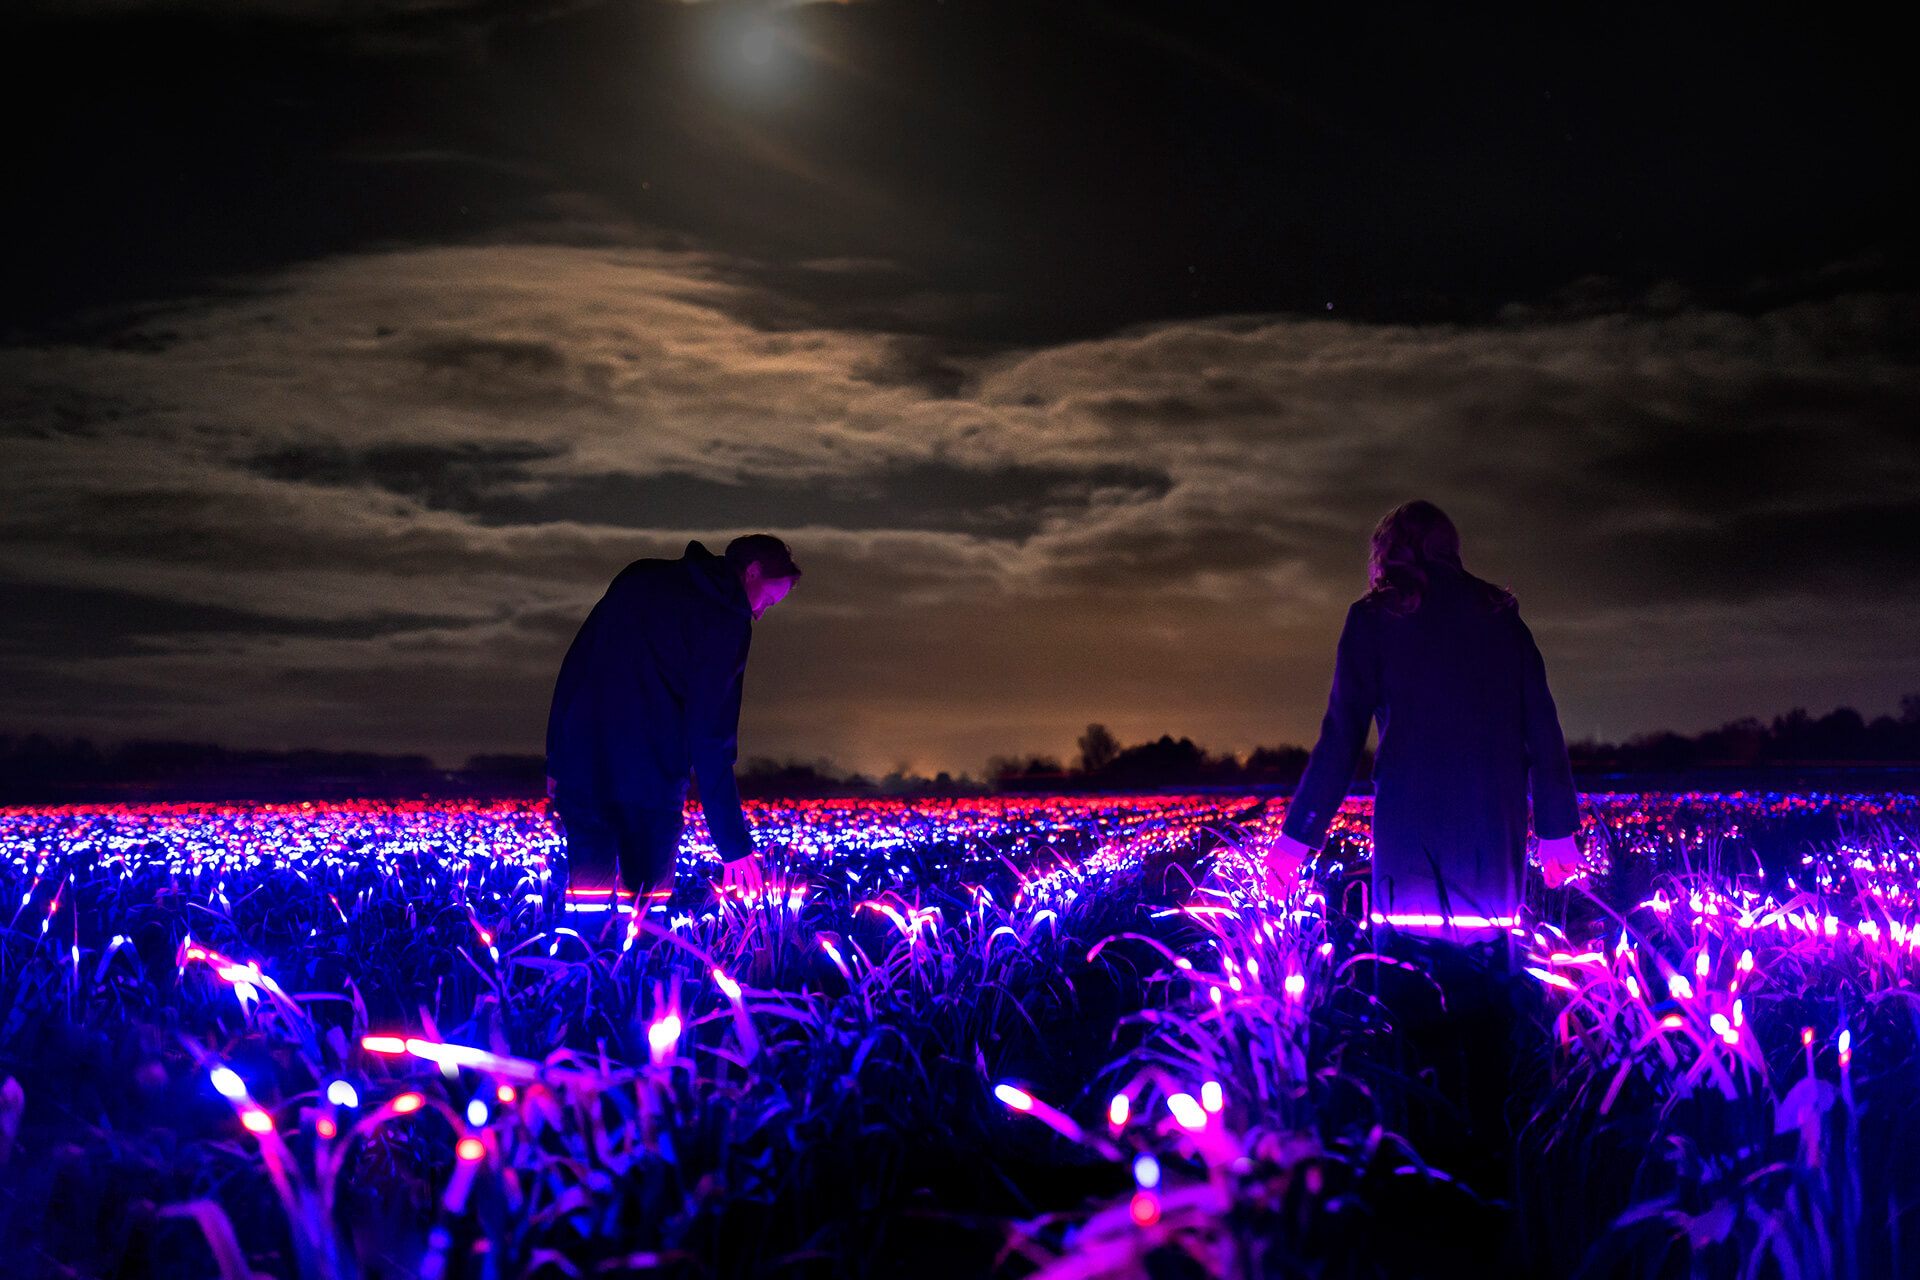 Grow, a light installation by Daan Roosegaarde | Grow by Daan Roosegaarde | STIRworld